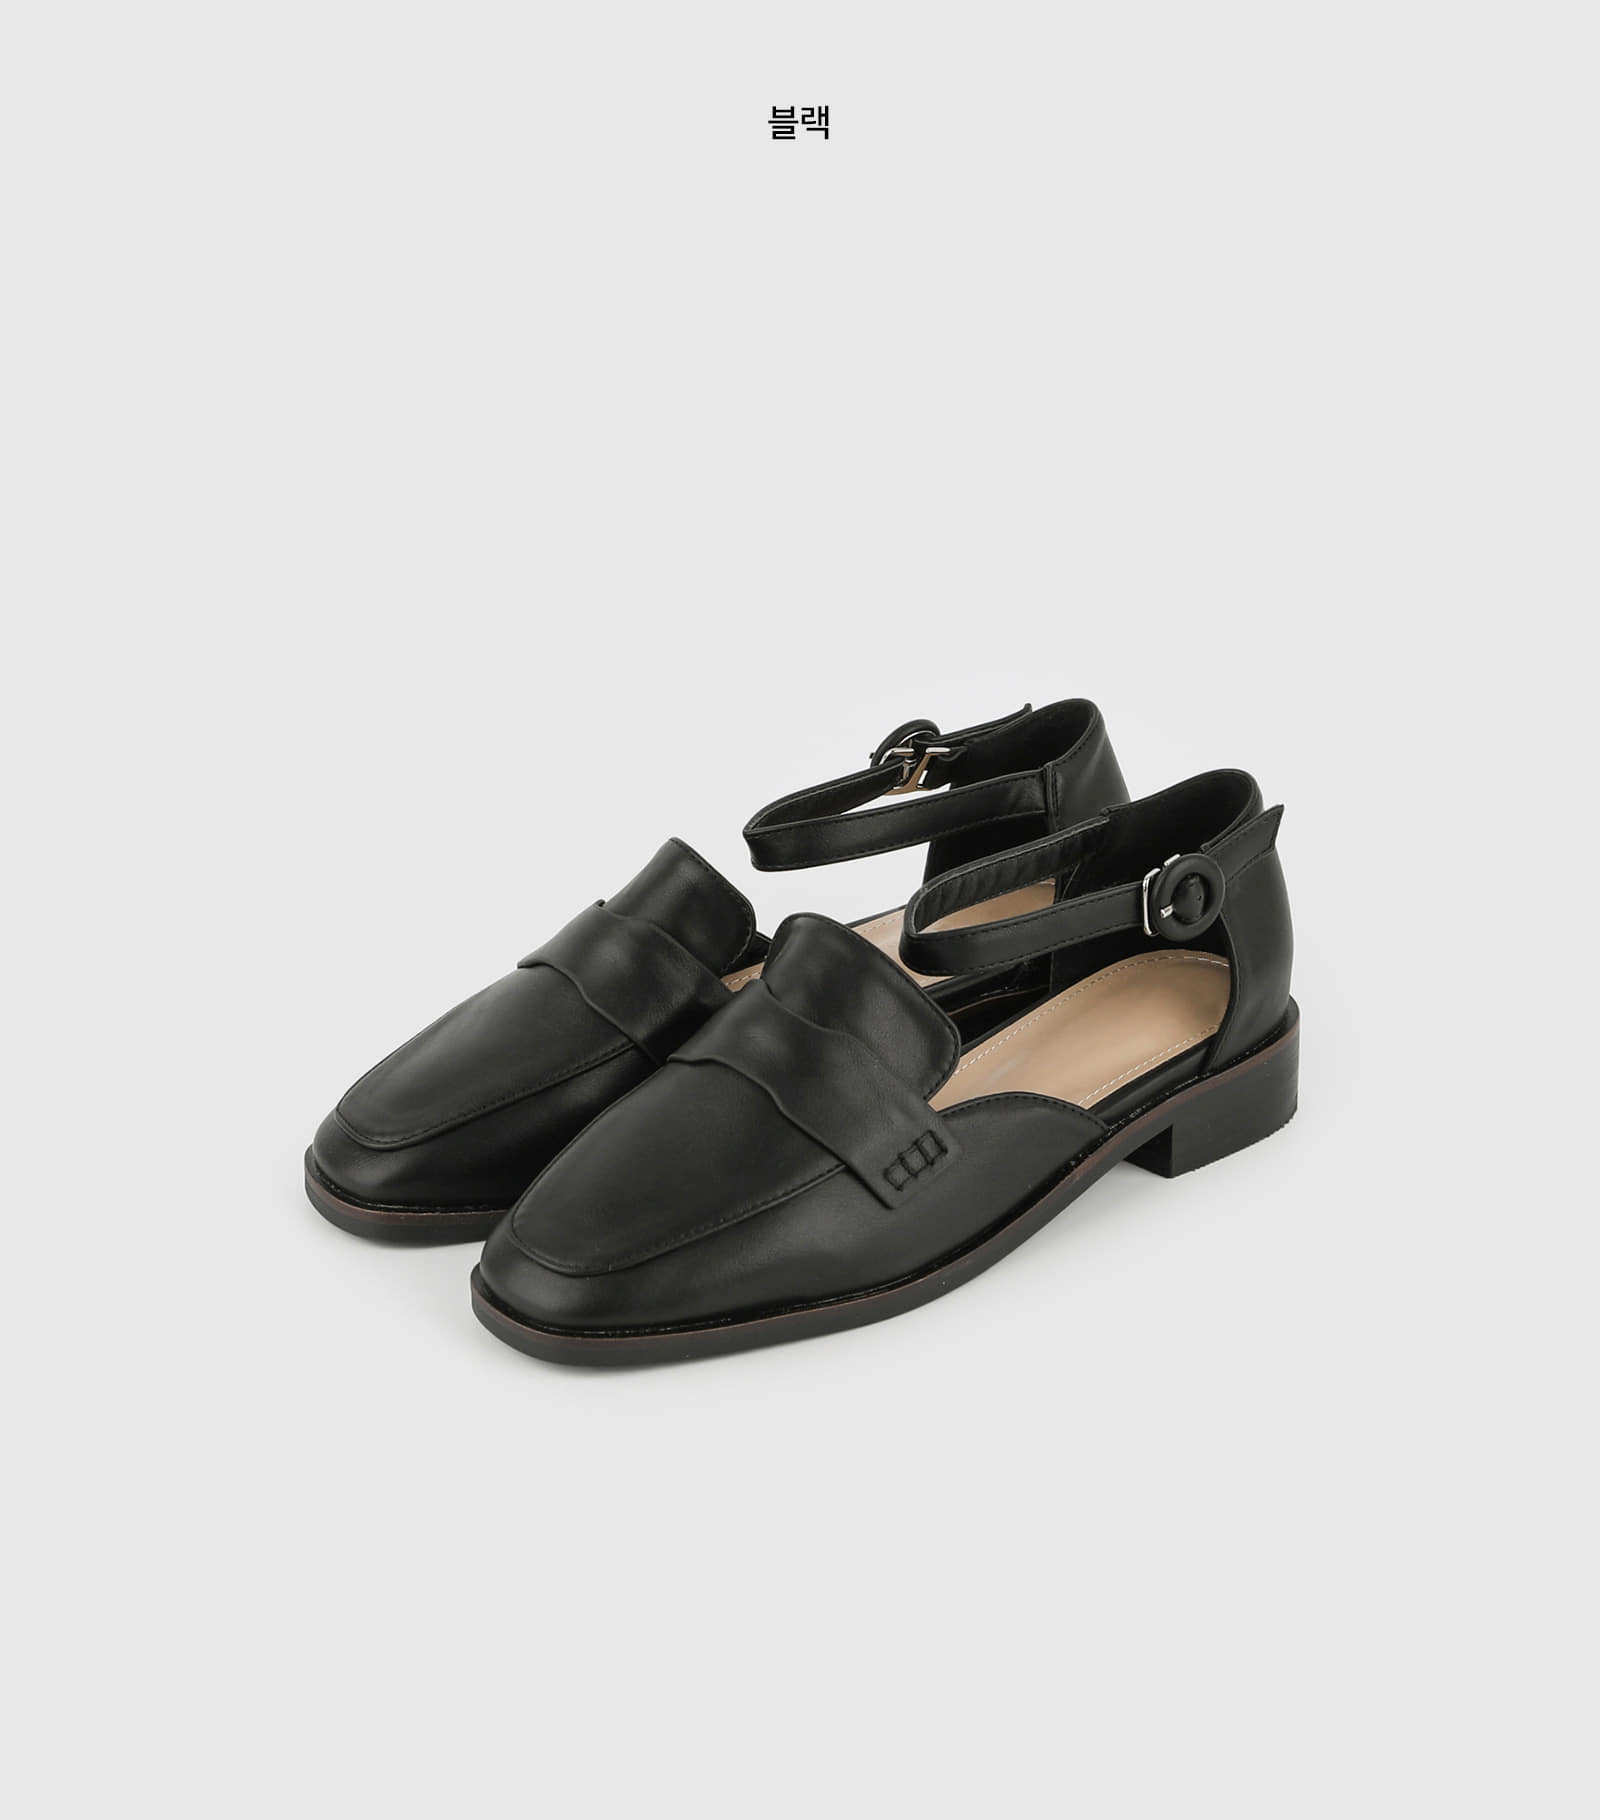 Formal Mary Jane flat sandals